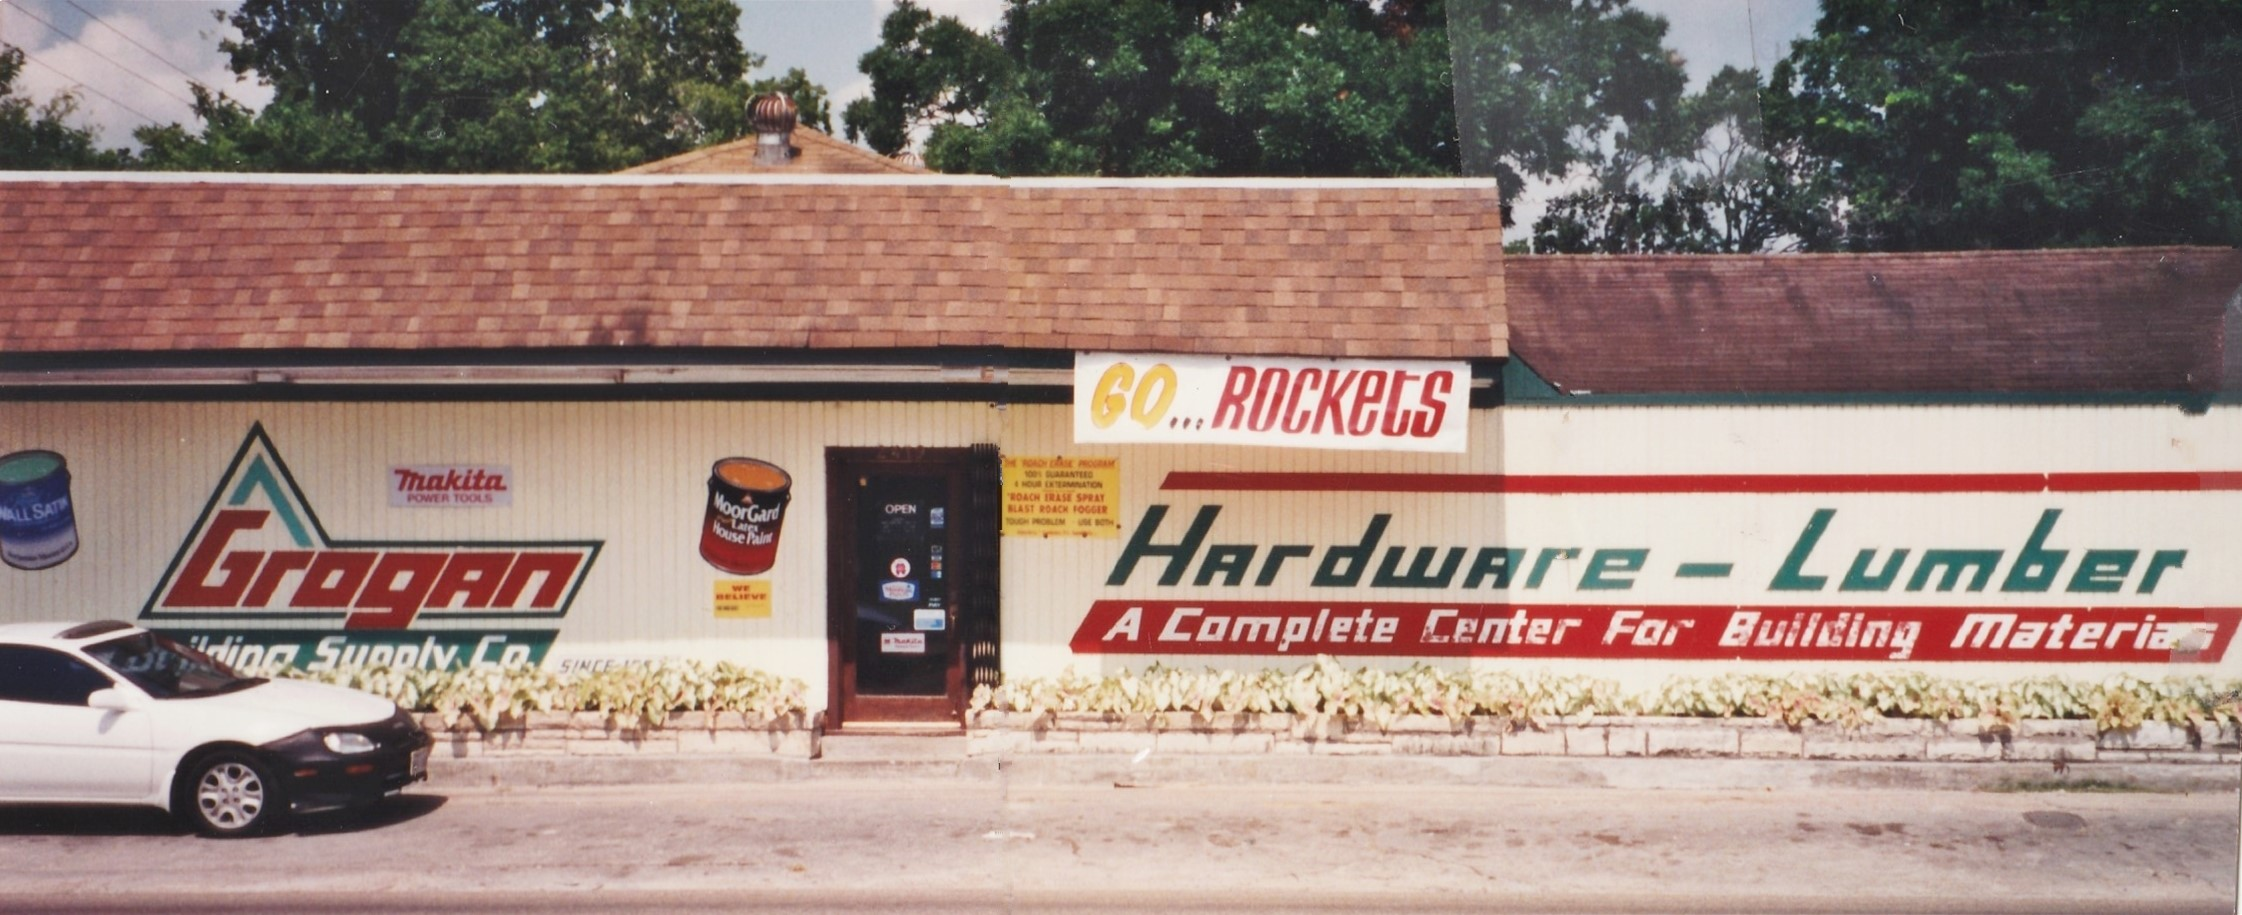 Grogan Building Supply 1994